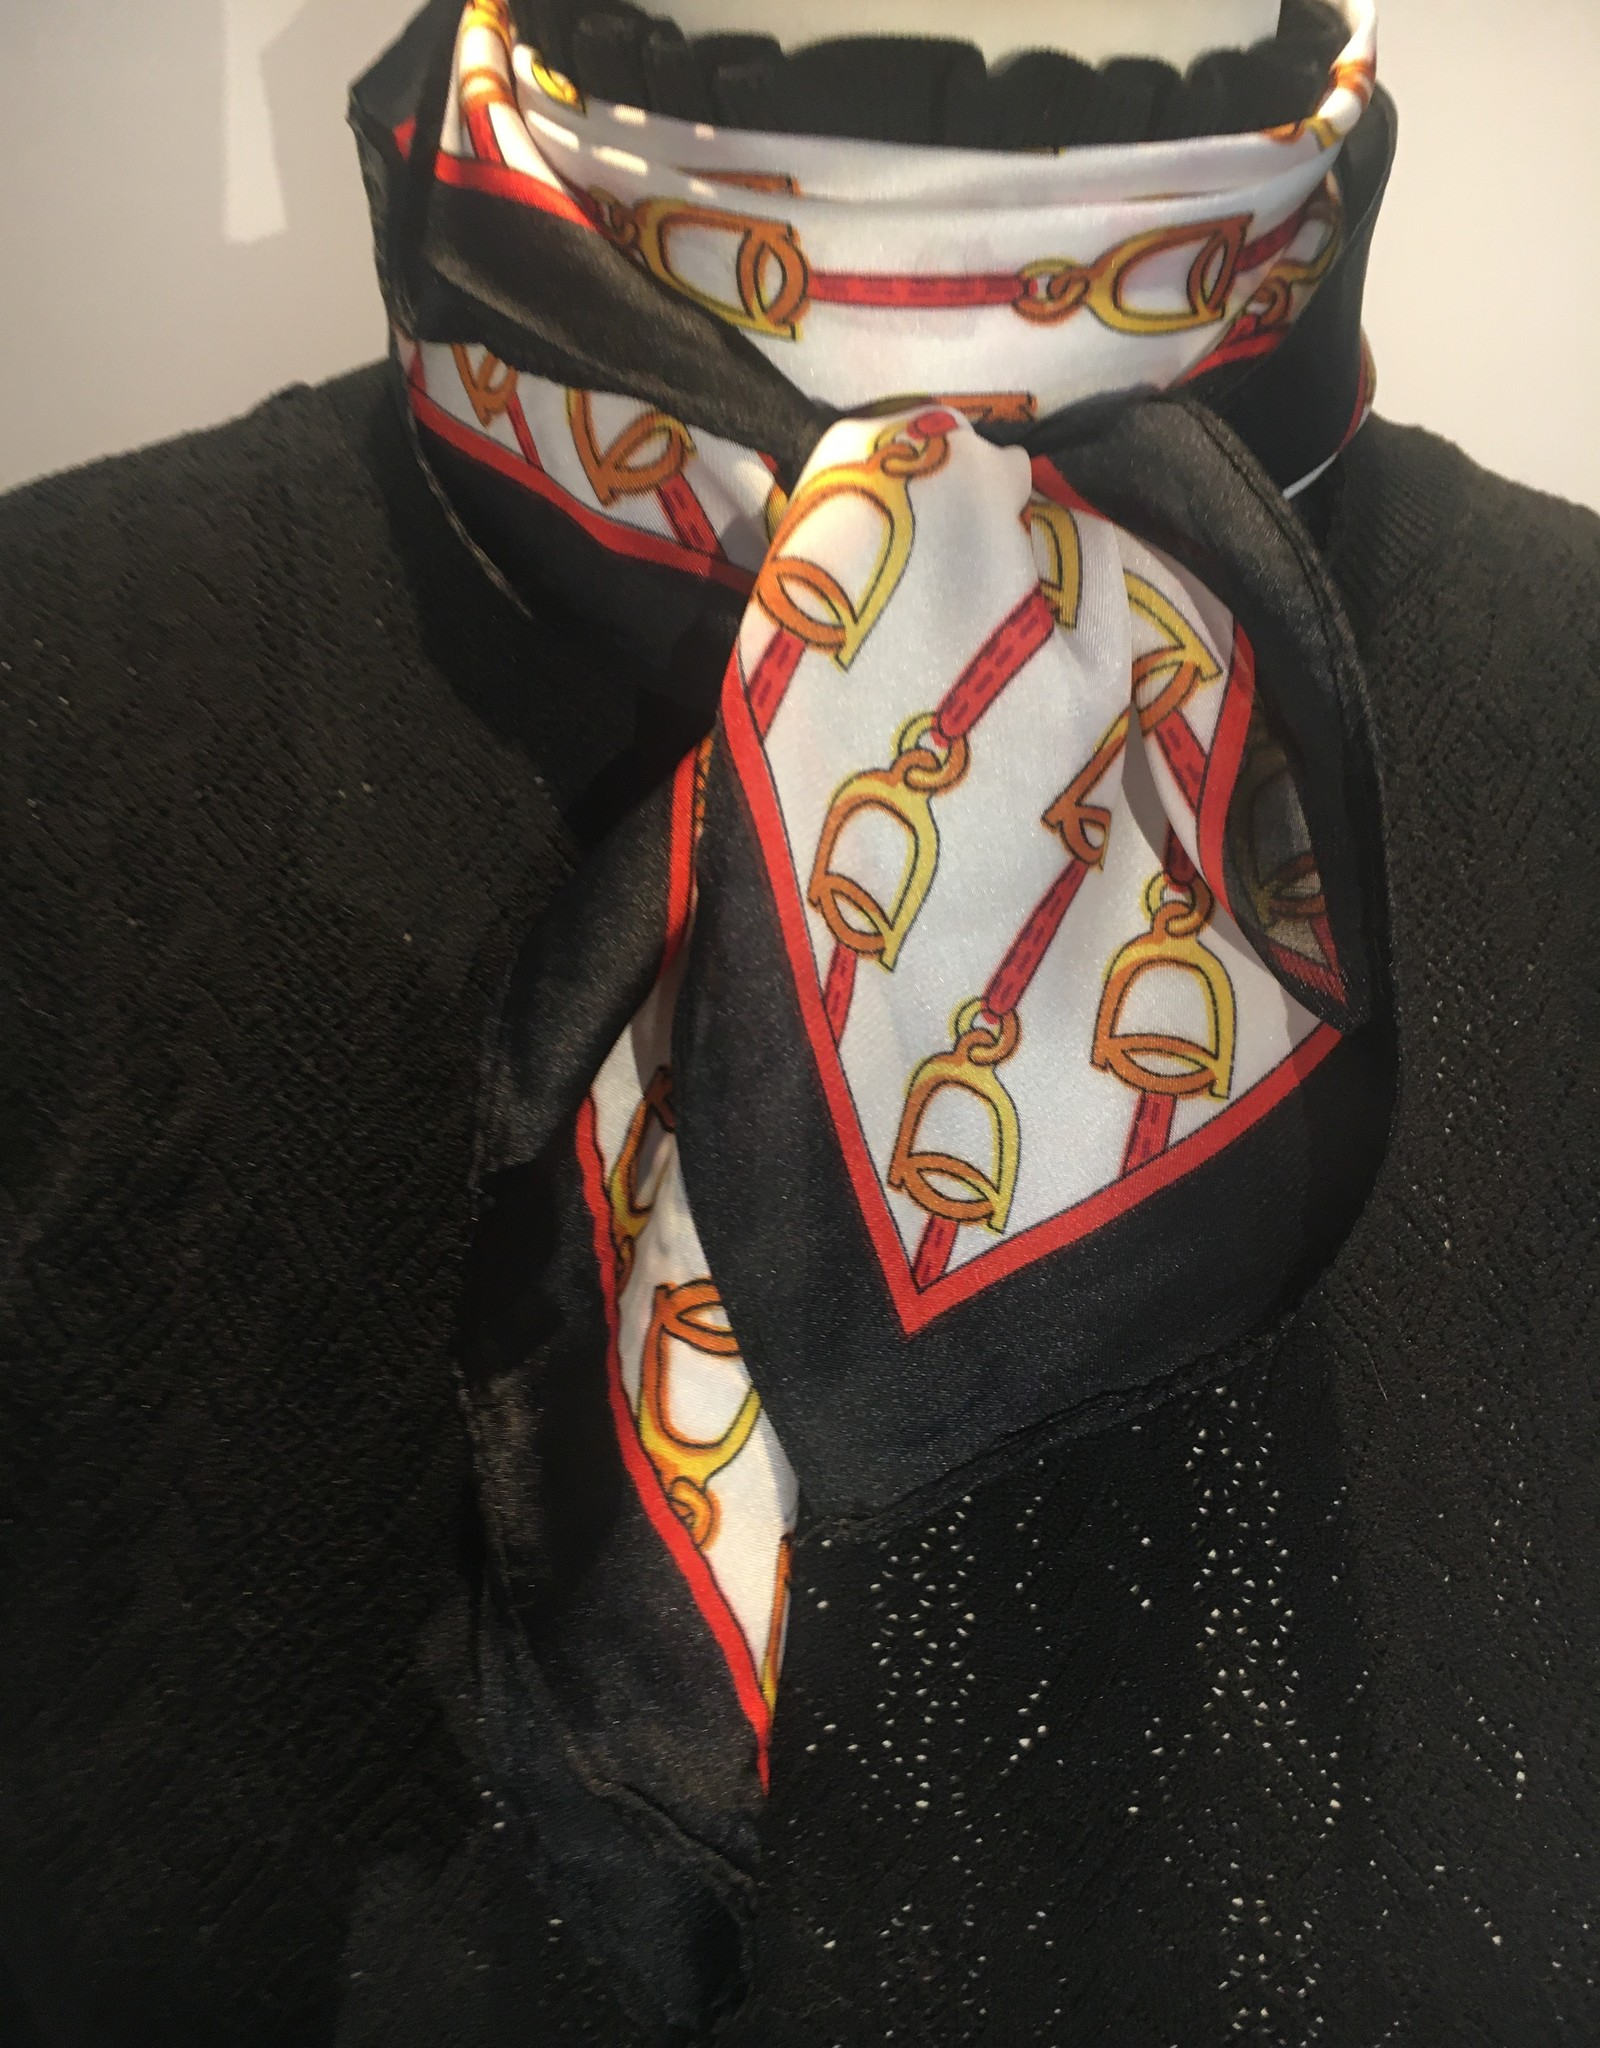 Bandana in satin black/white and red with stirrups